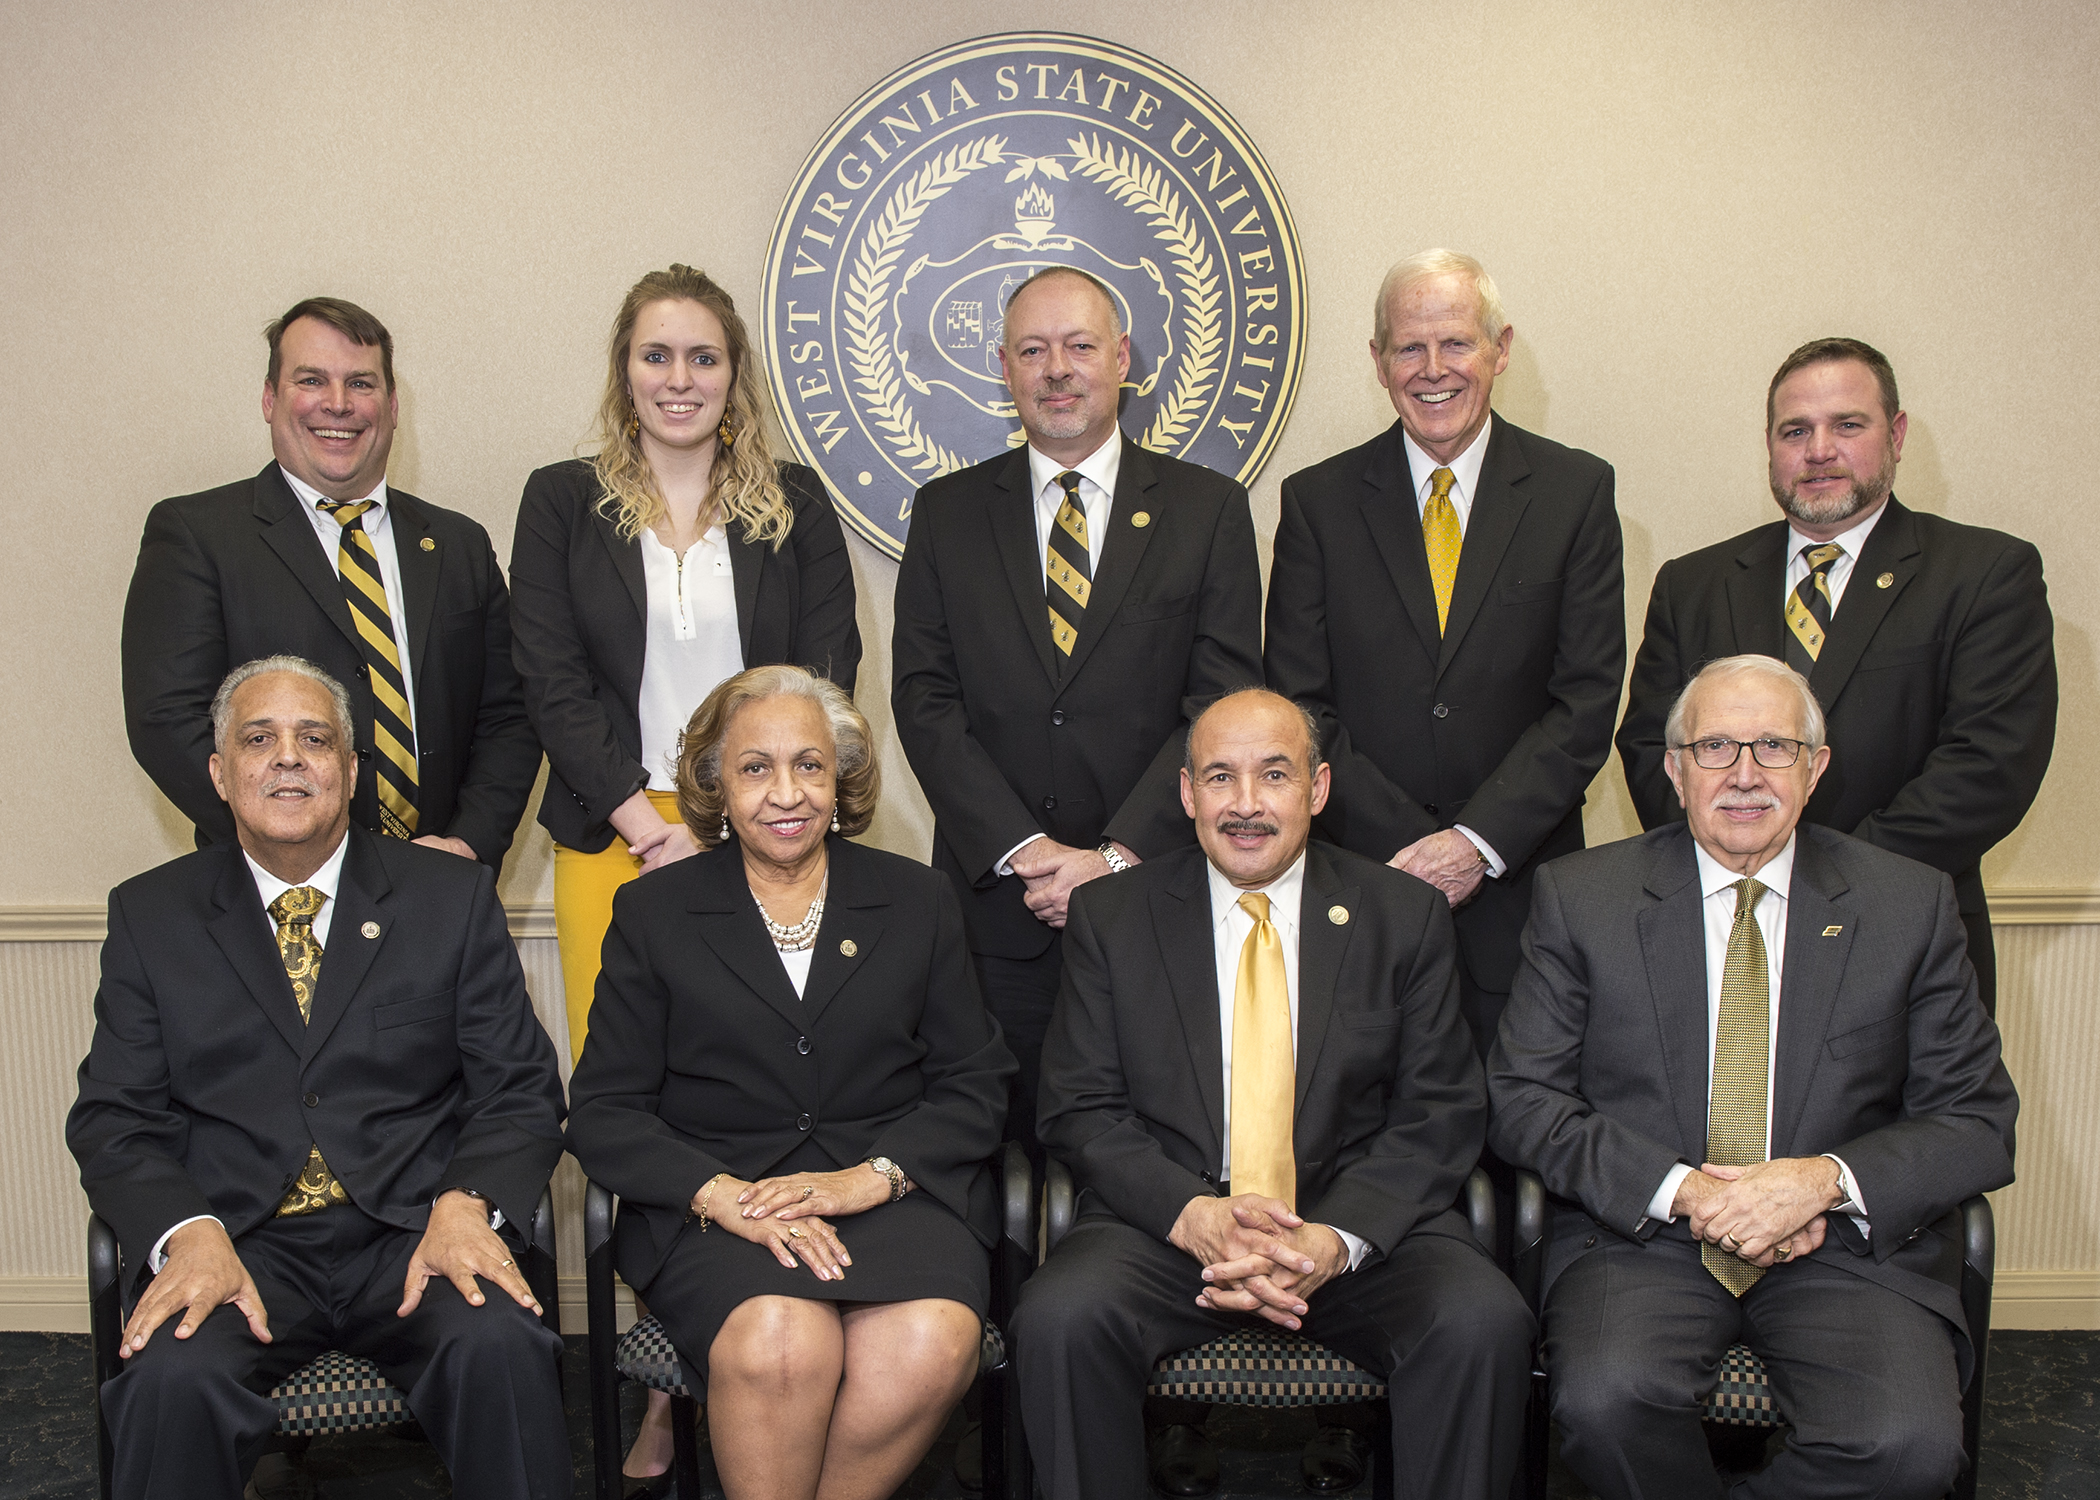 The WVSU Board of Governors